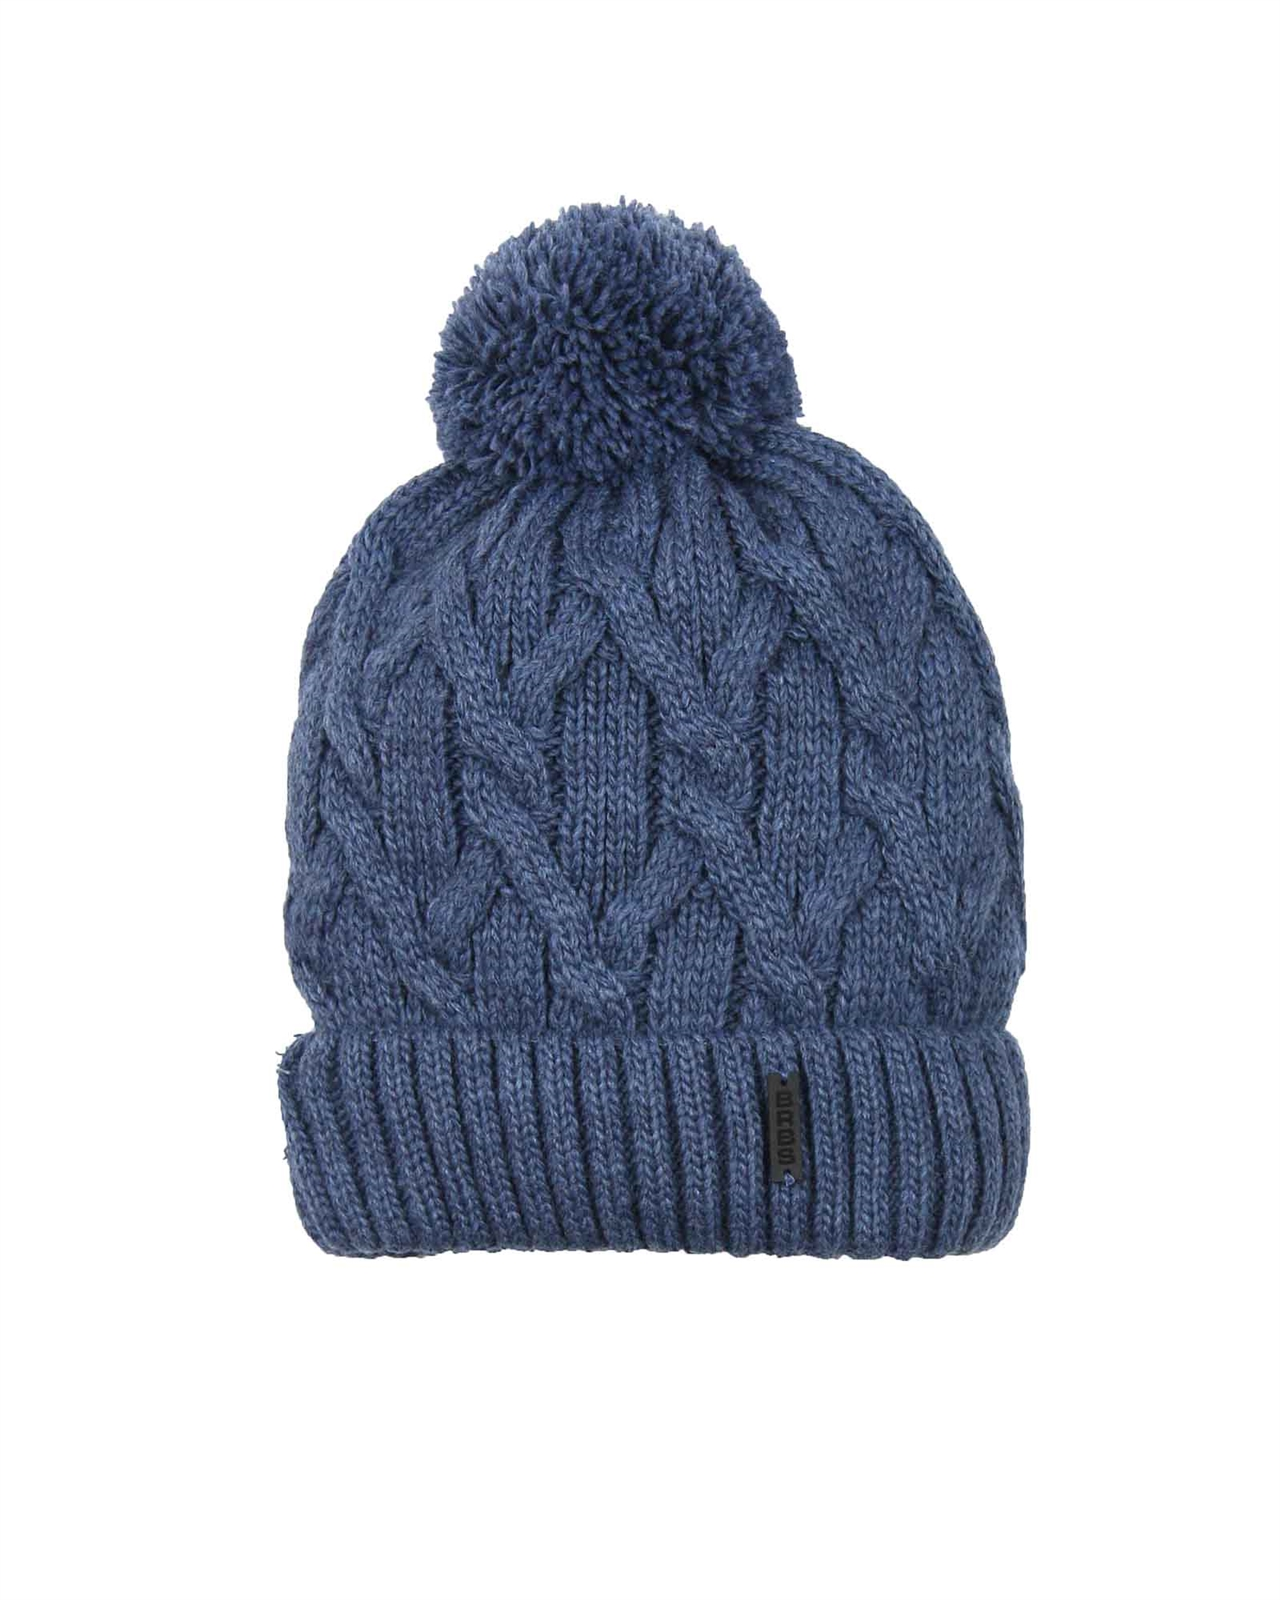 Barbaras Boys  Cable Knit Hat in Blue with Pompom - Barbara Hats ... 73c4bc2e2eb